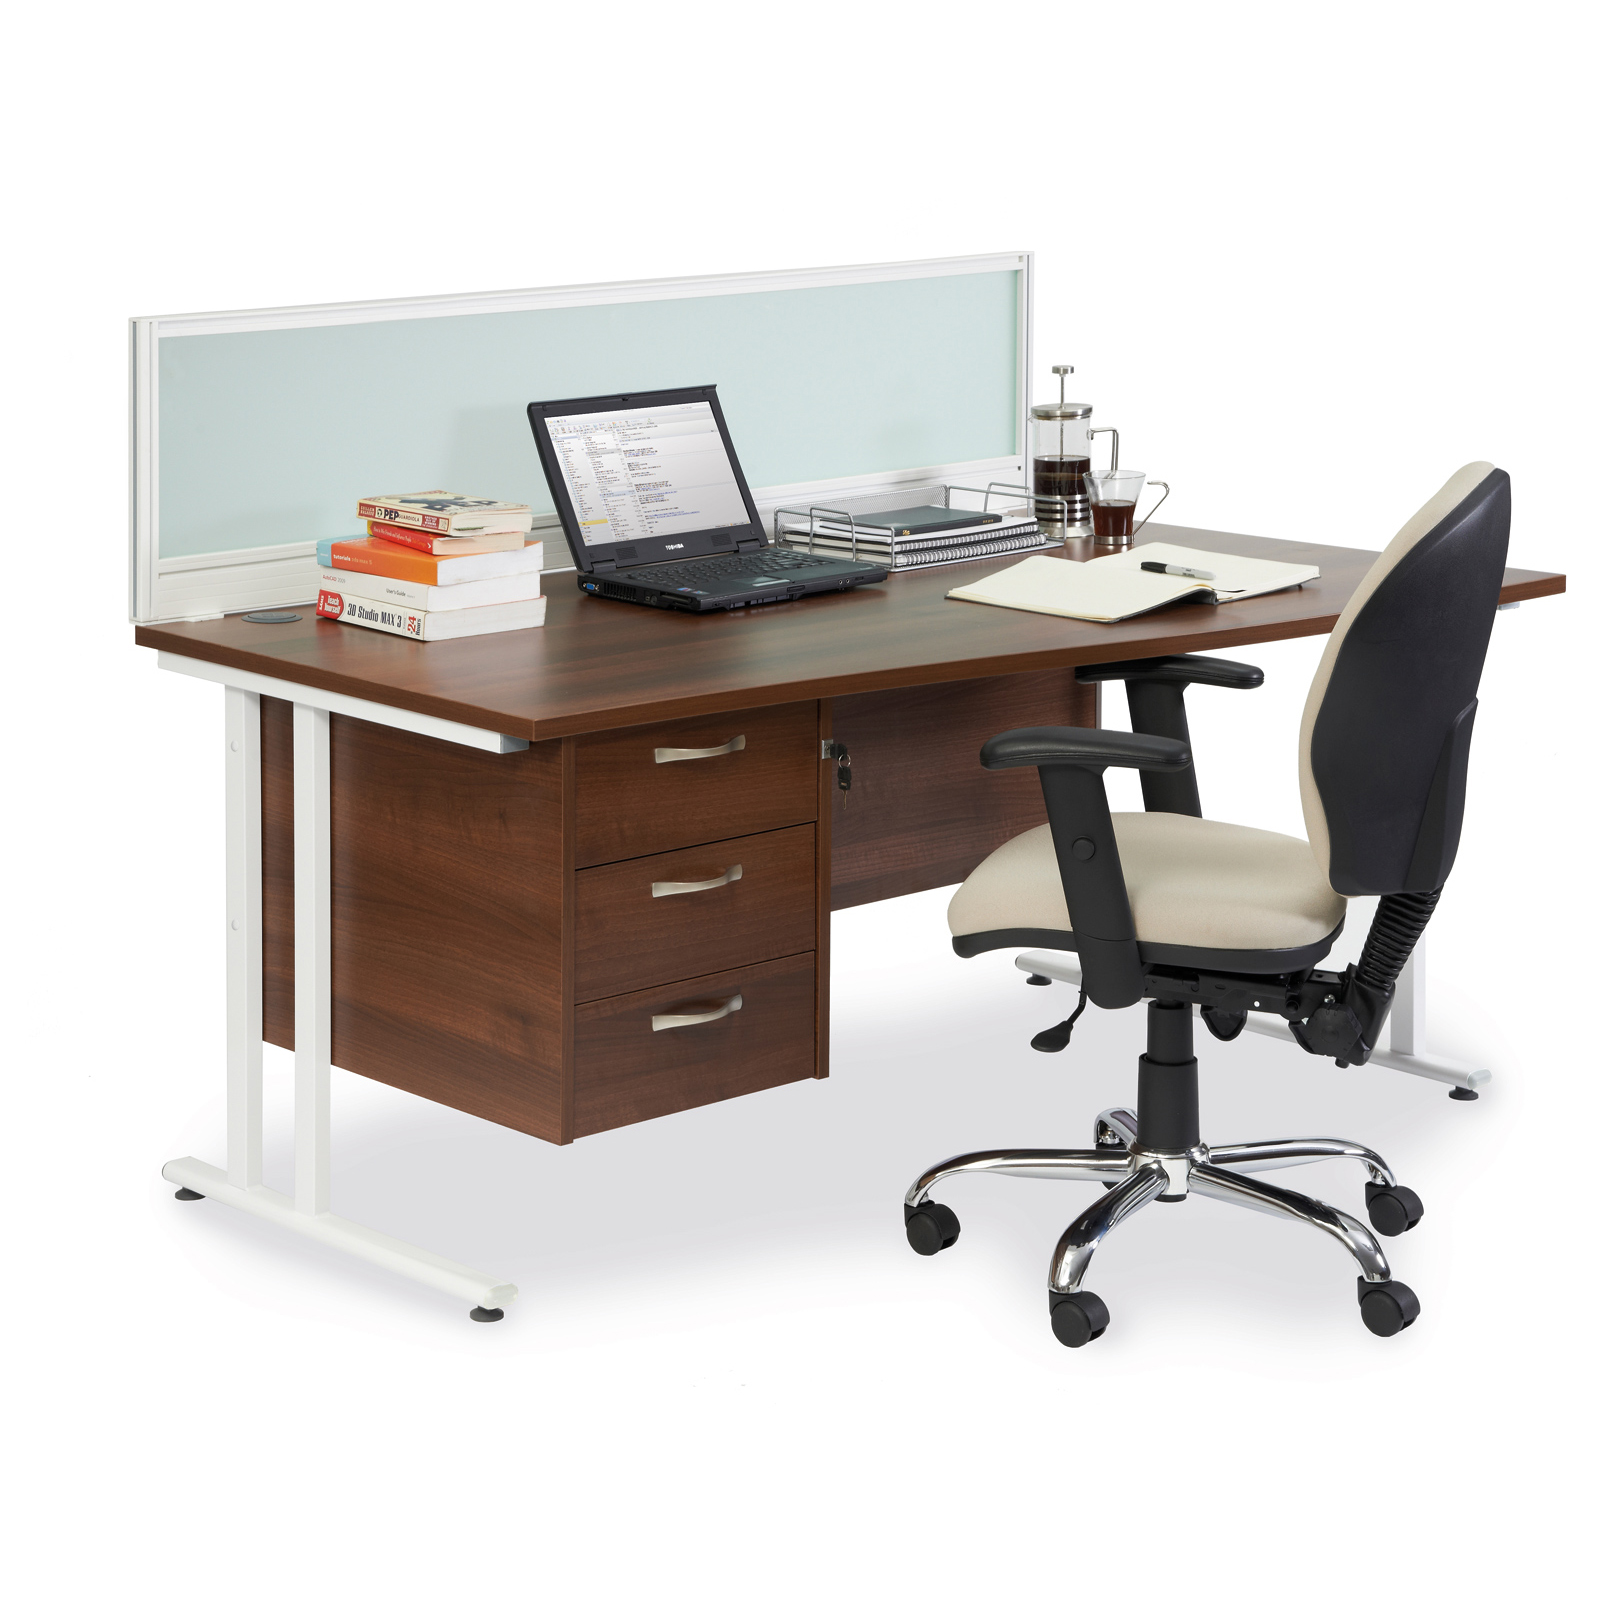 Maestro 25 WL right hand wave desk 1200mm - white cantilever frame, beech top